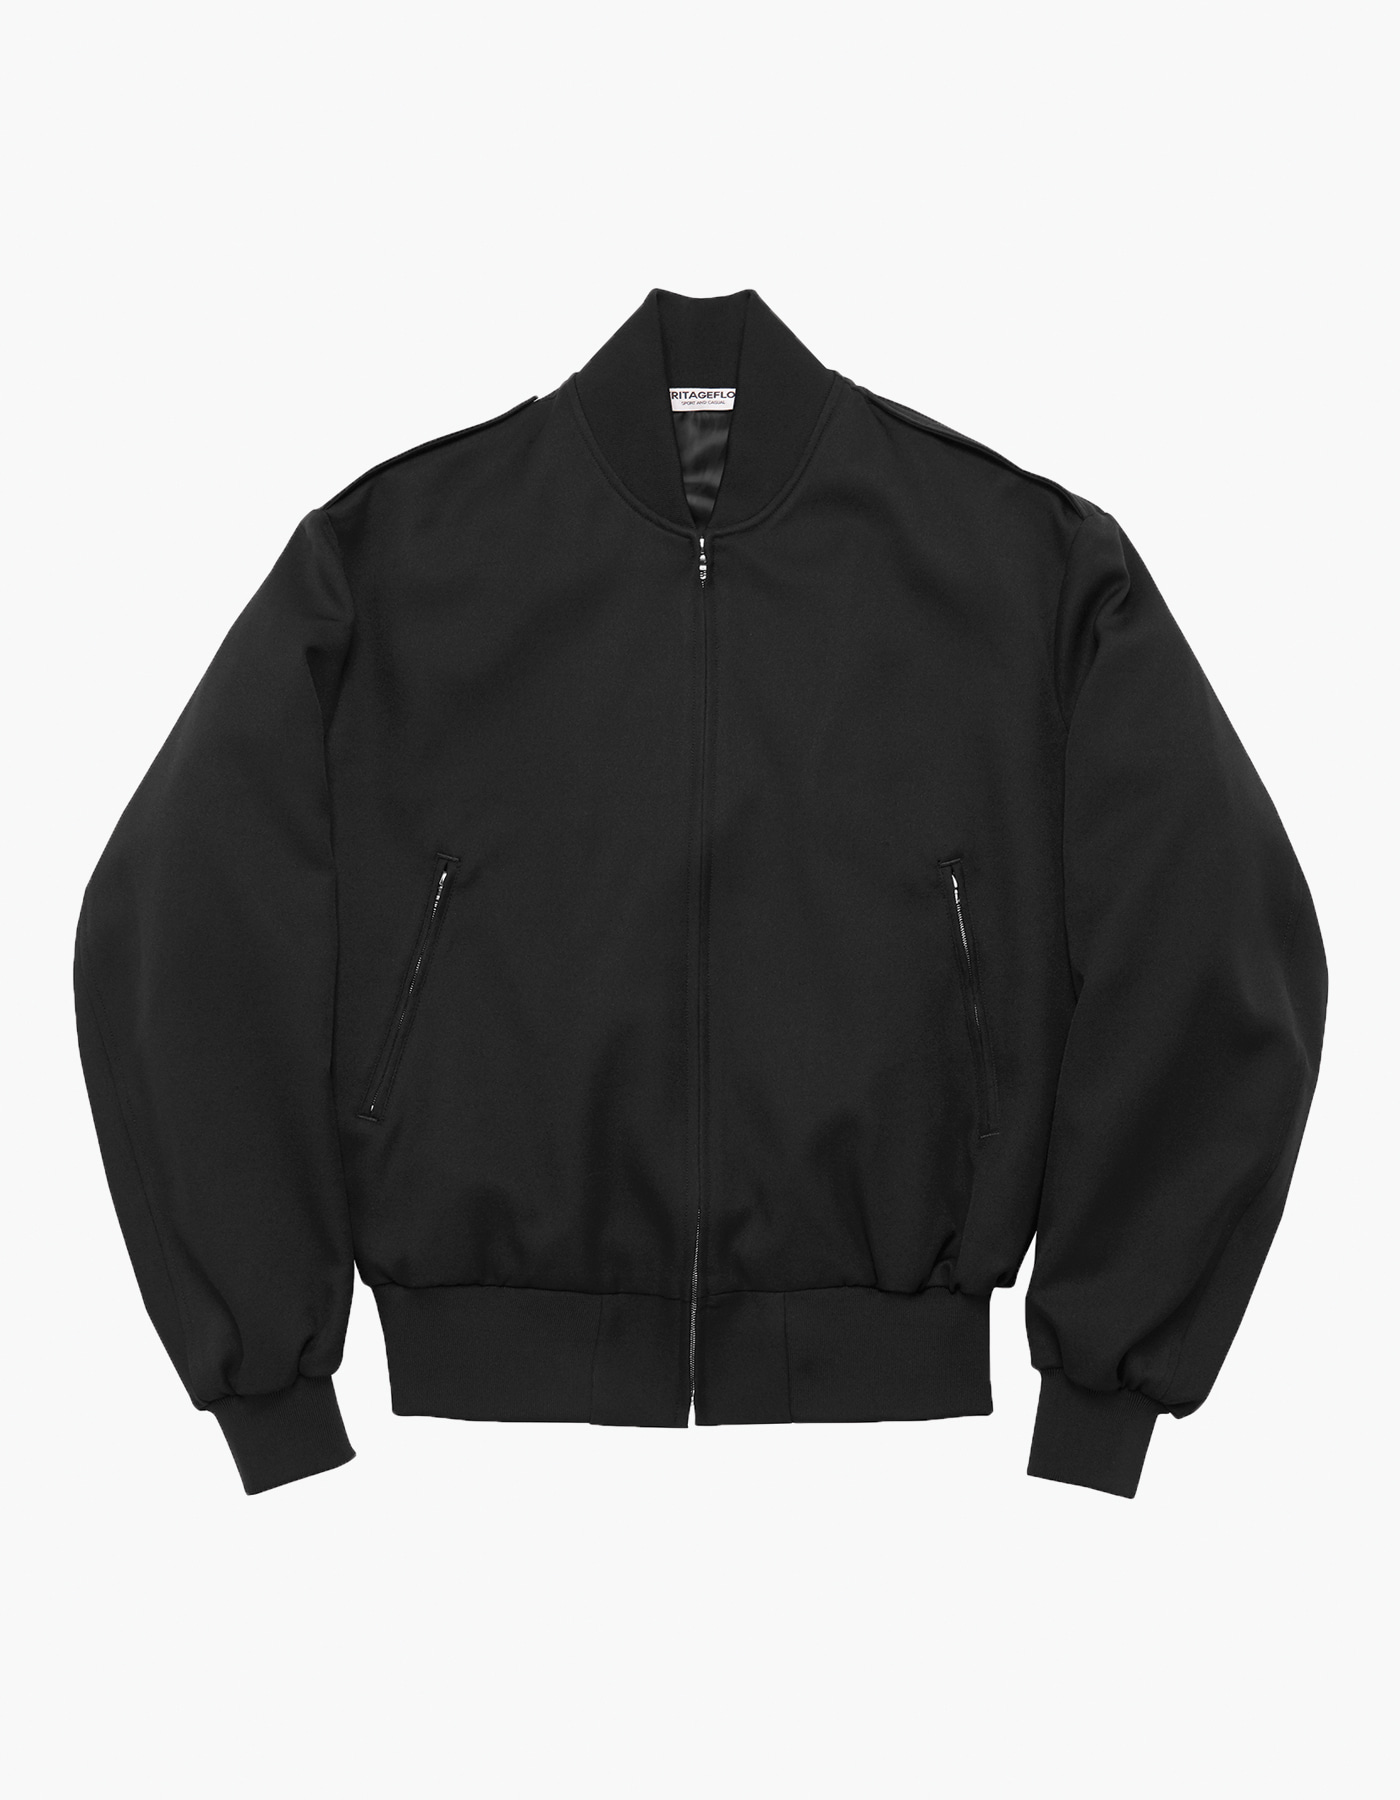 OFFICER BLOUSON / BLACK